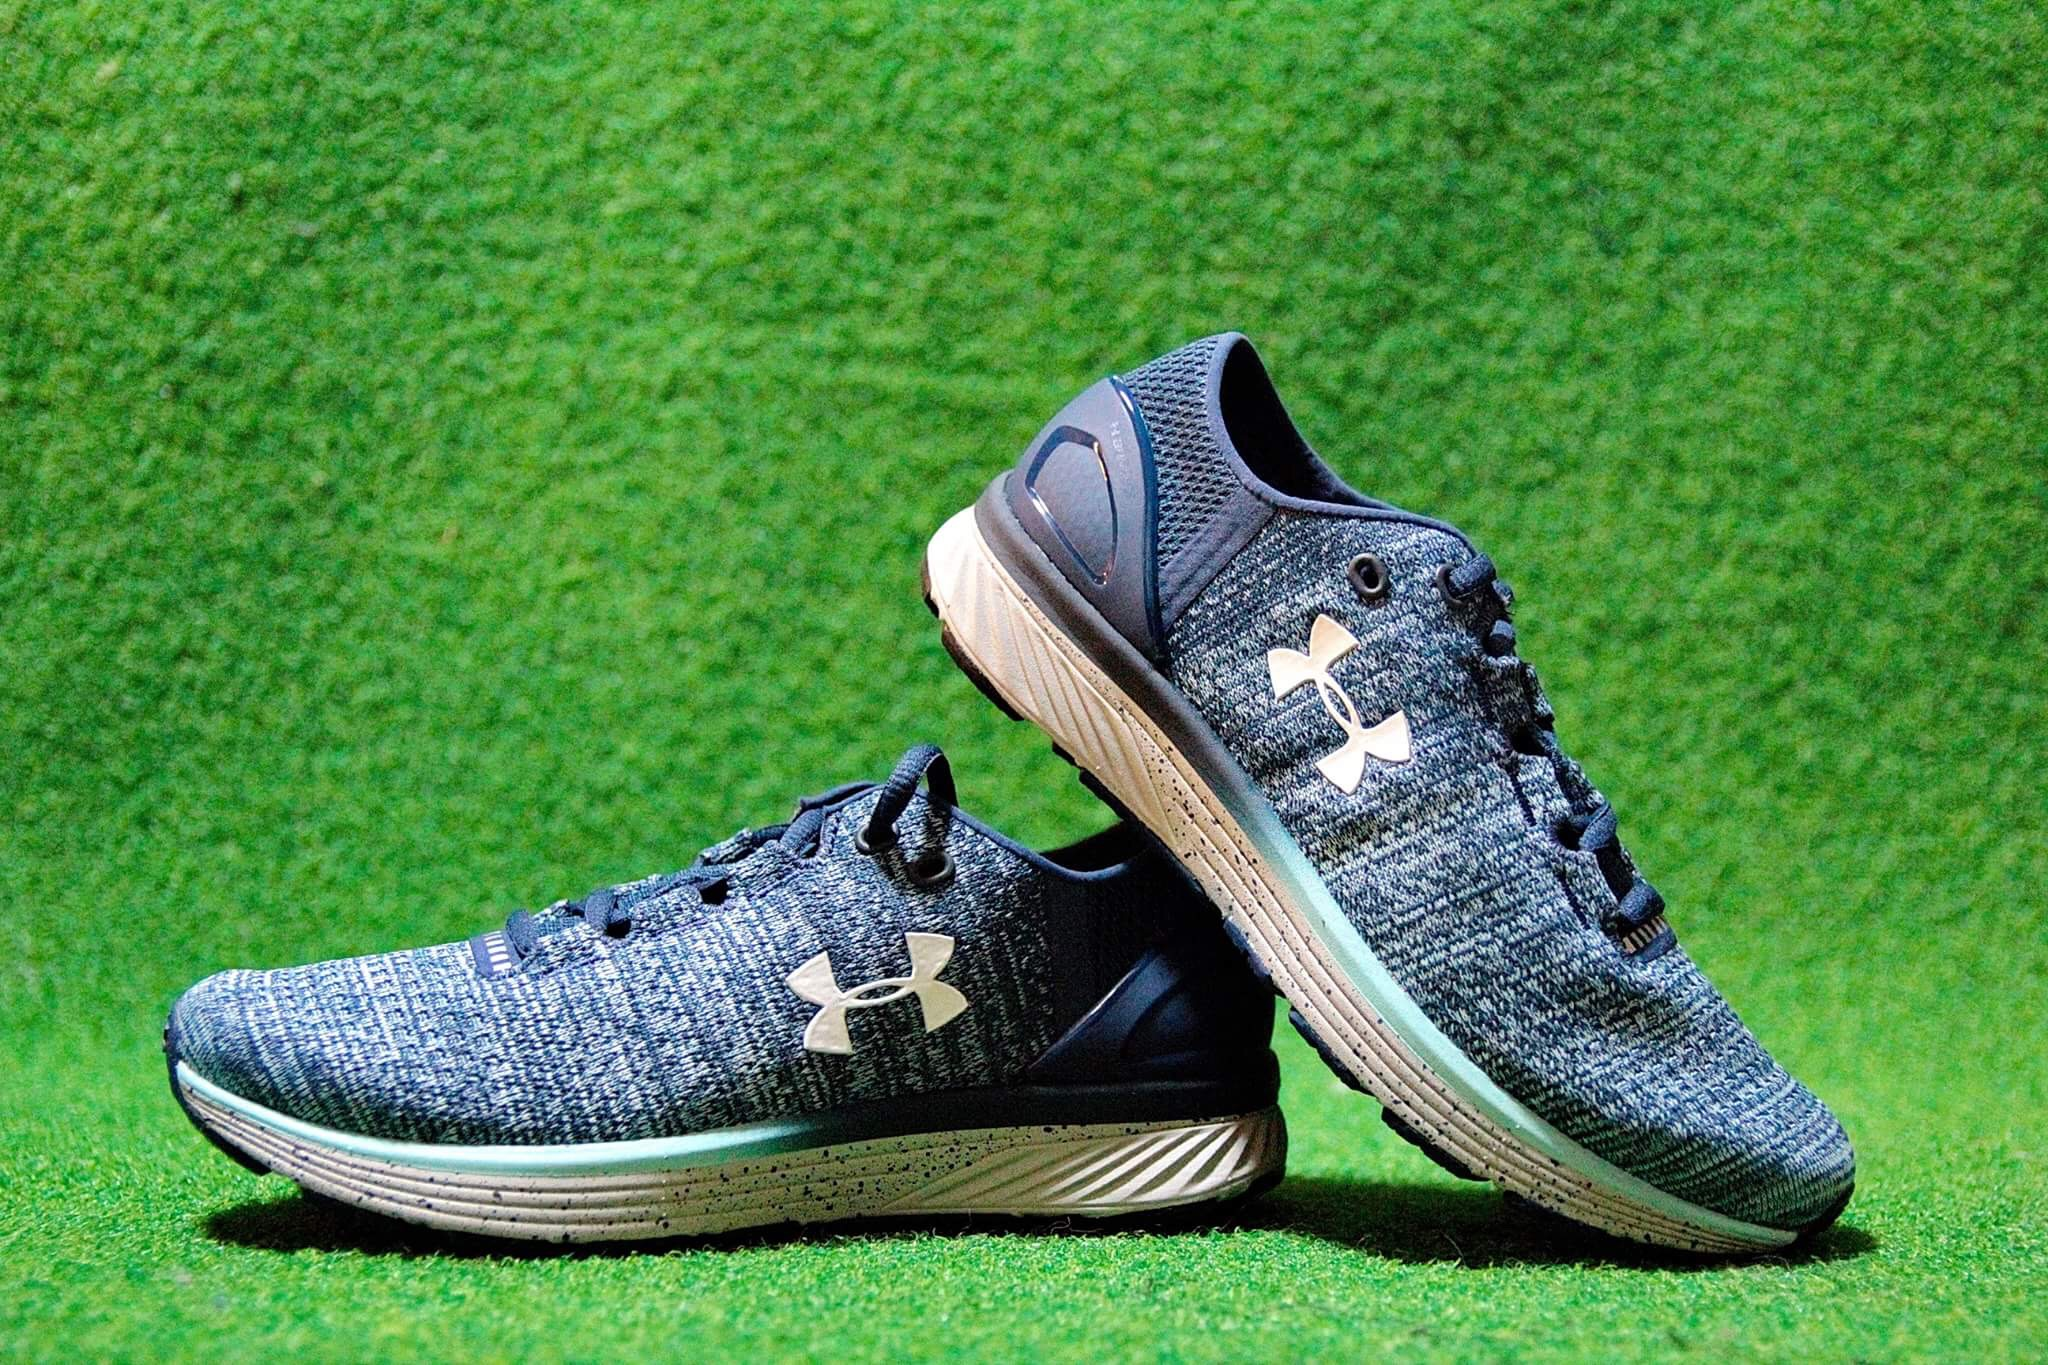 premium selection 47fce 78ece Under Armour's Charged BANDIT 3 – My Initial Impression ...